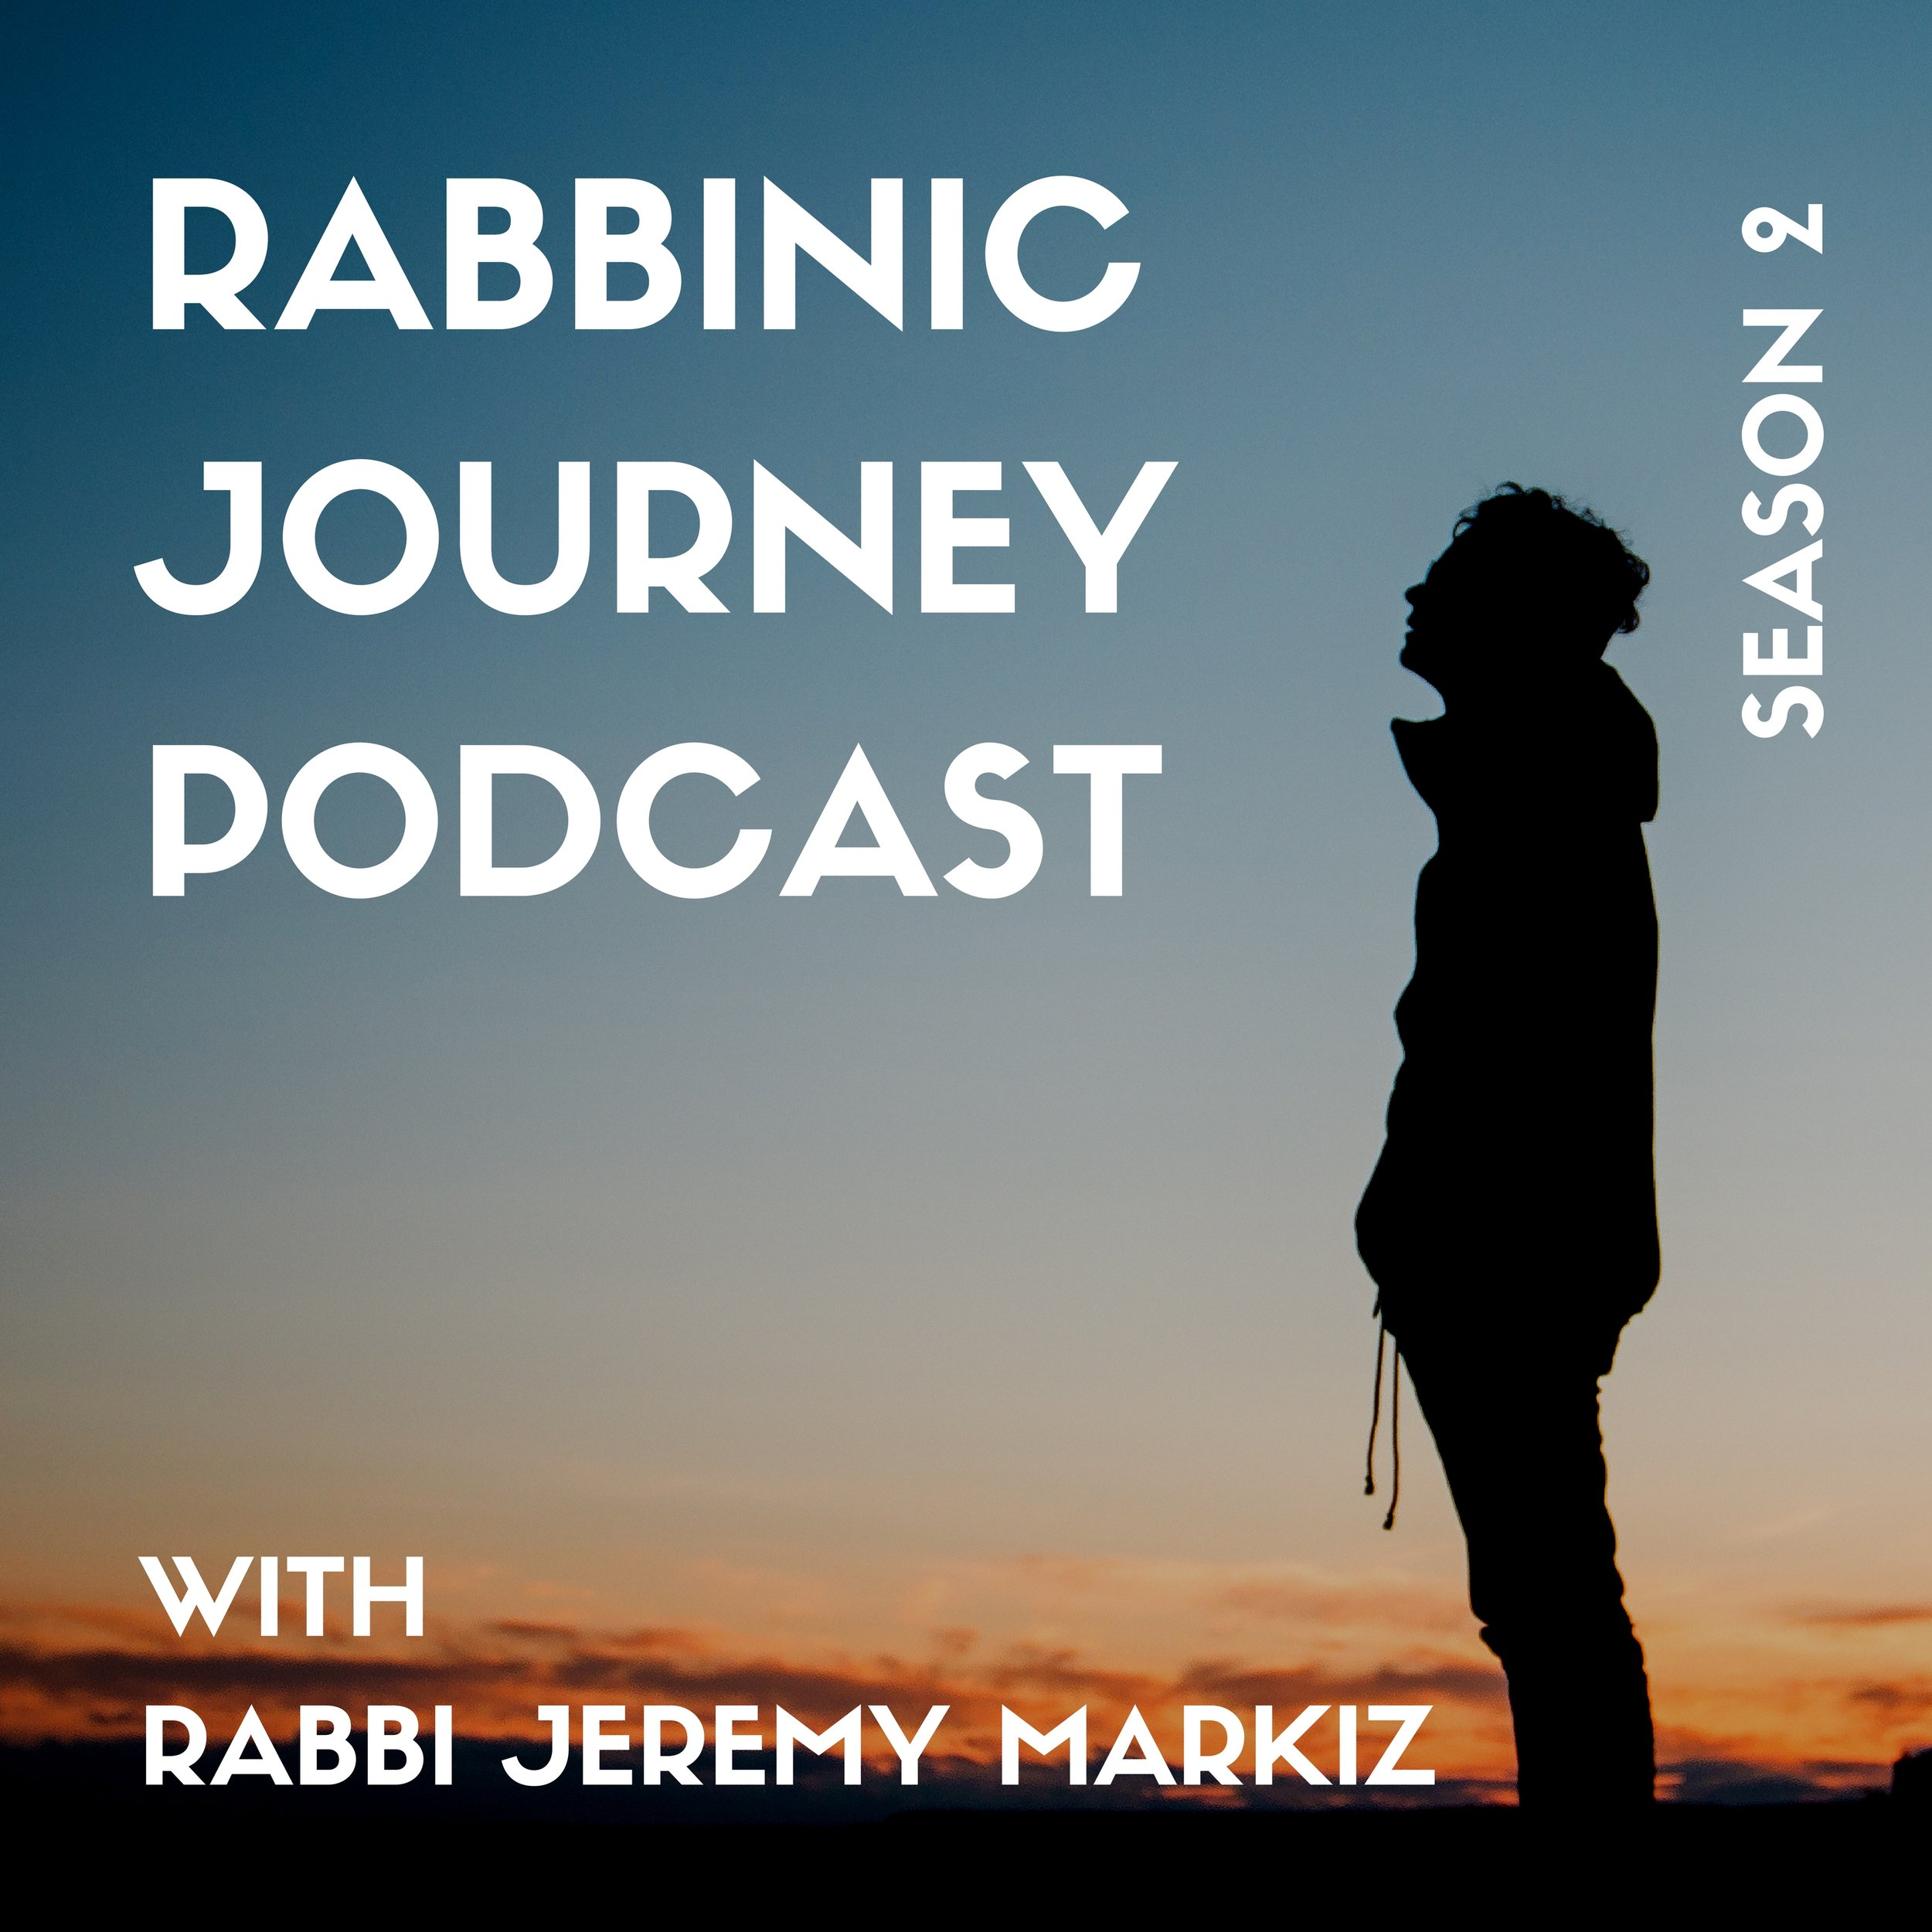 Rabbinic Journey Podcast (1).jpg